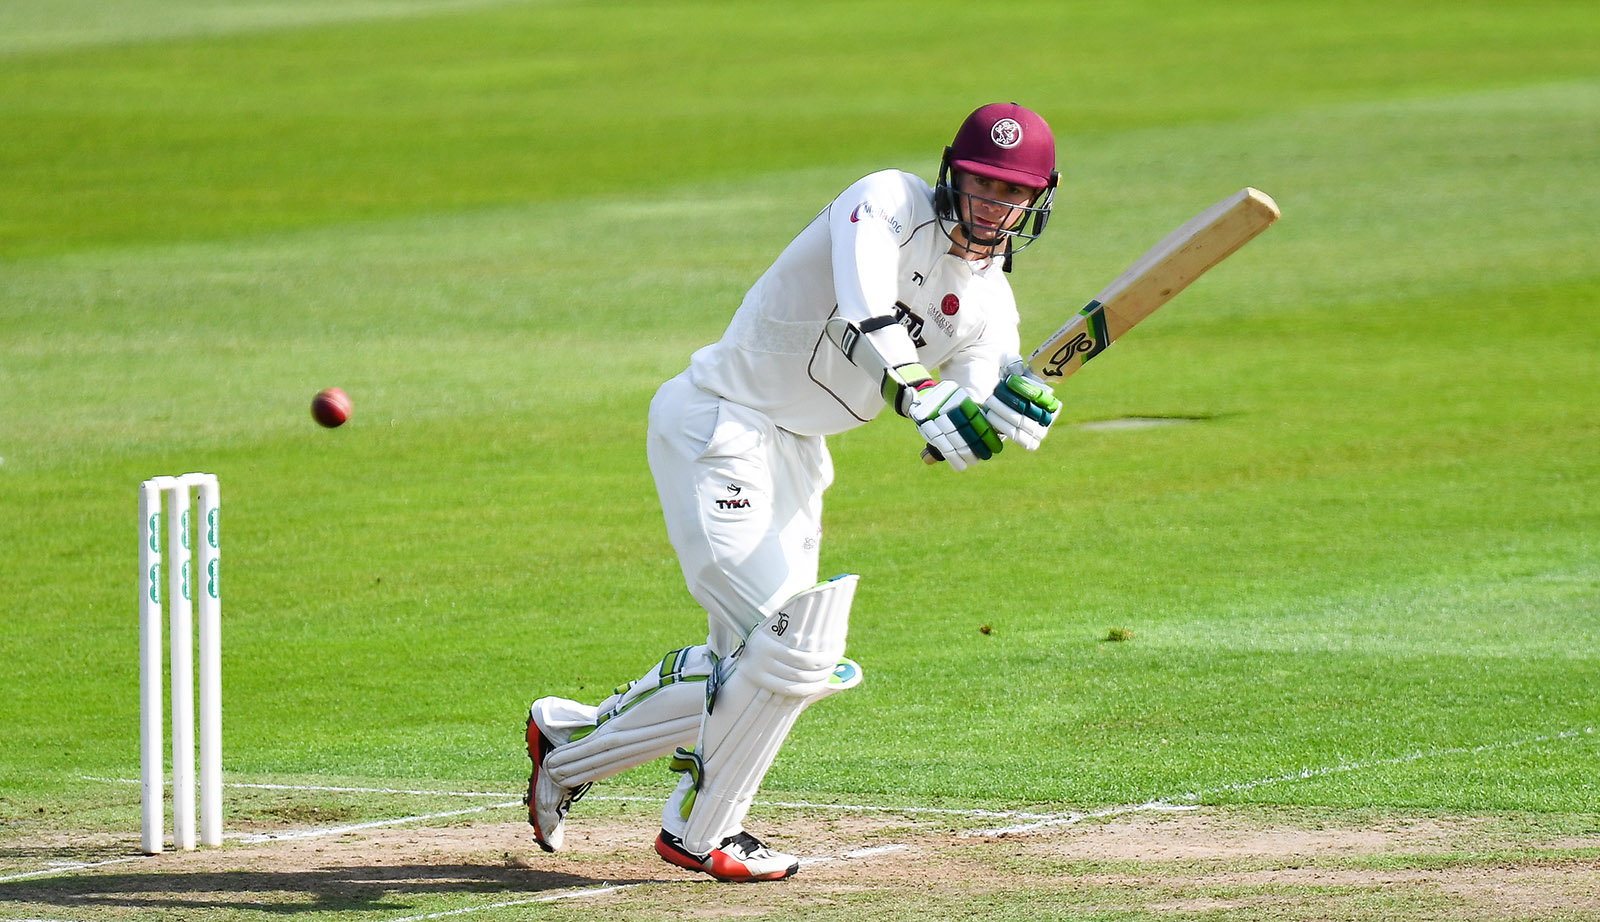 Cricket In New Zealand The Left Handed Opener Who Graduated From The Somerset Academy In The Summer Of  Made His Championship Debut In The First